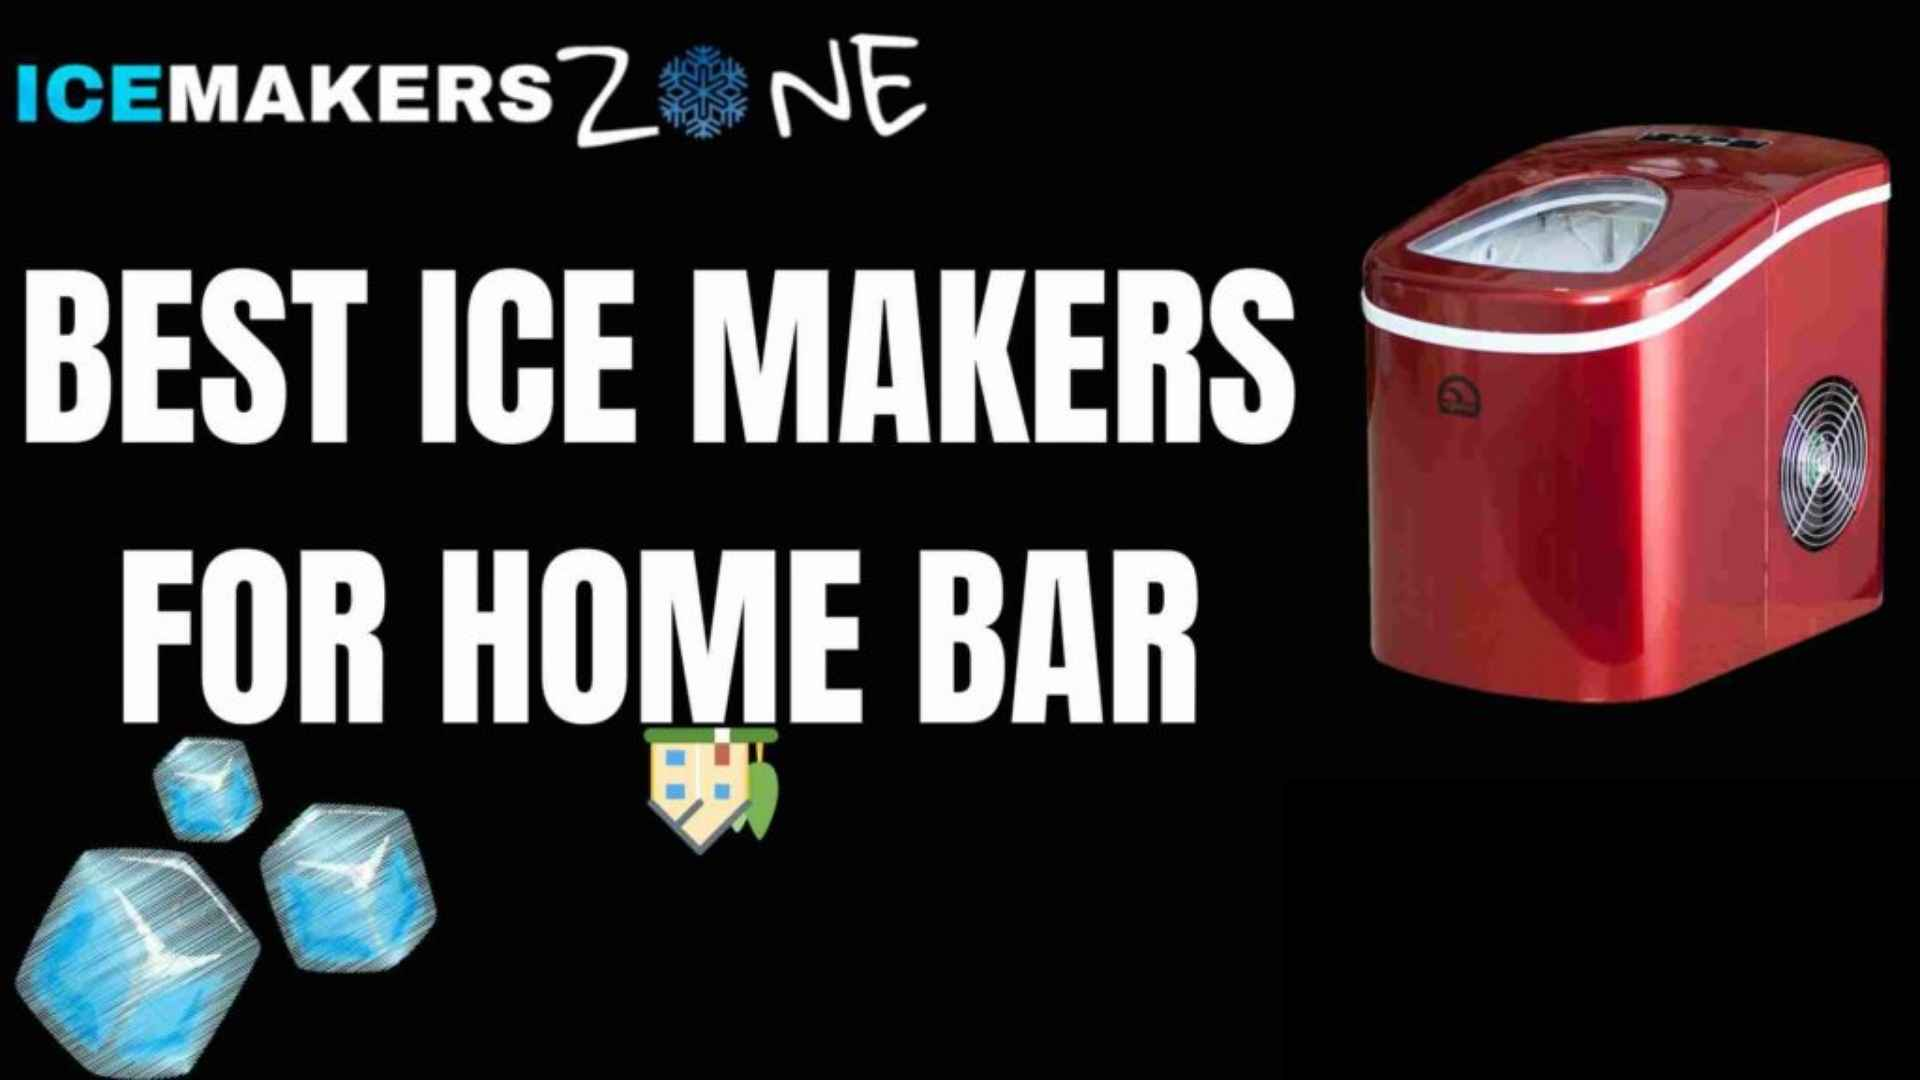 Best Ice Makers for Home Bar